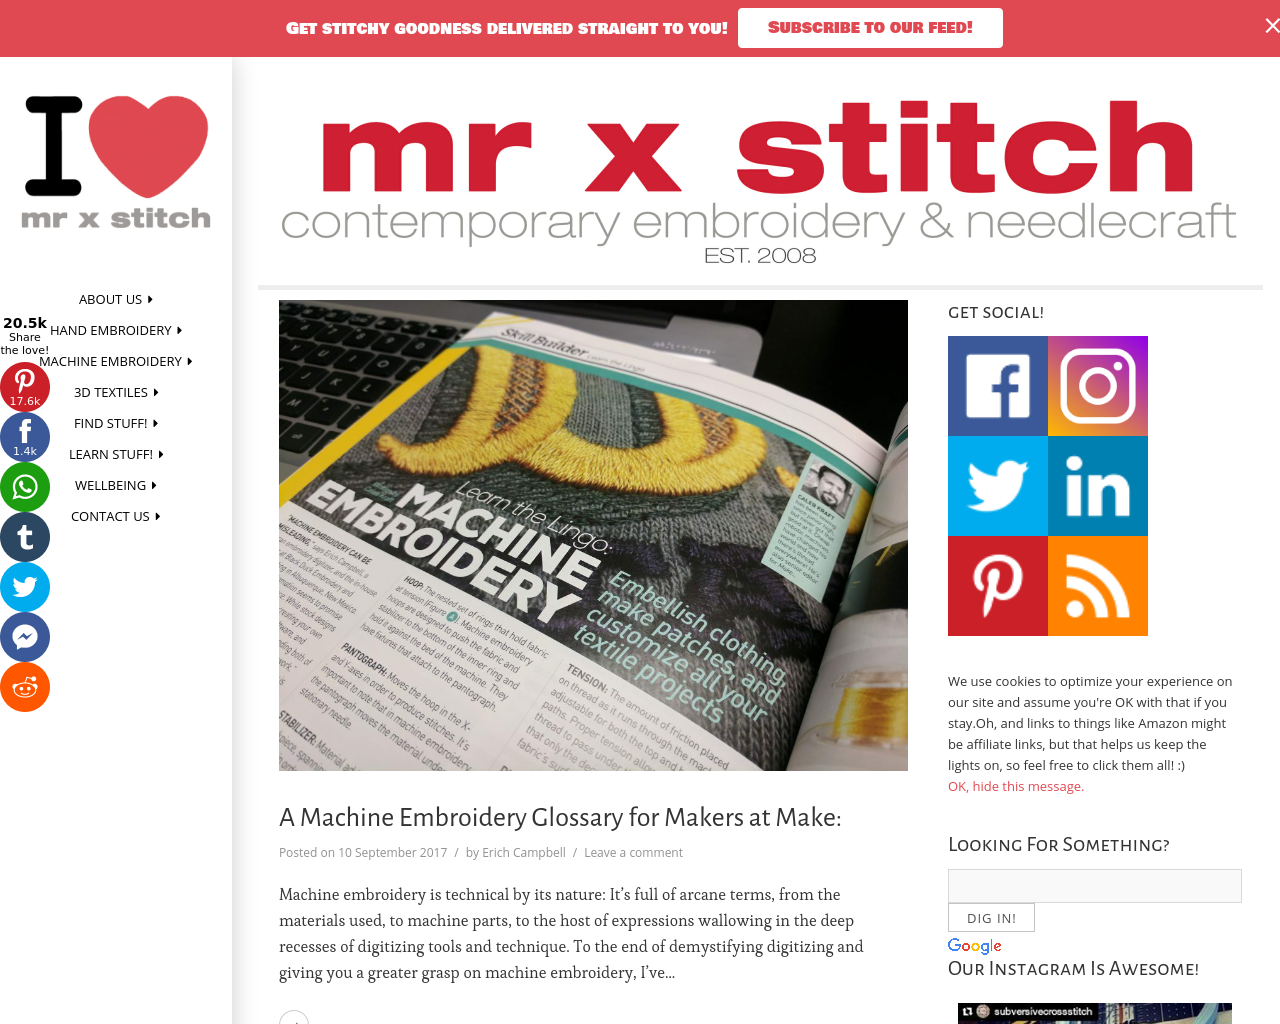 Mr-x-stitch-contemporary-embroidery-&-needdlecraft-Advertising-Reviews-Pricing